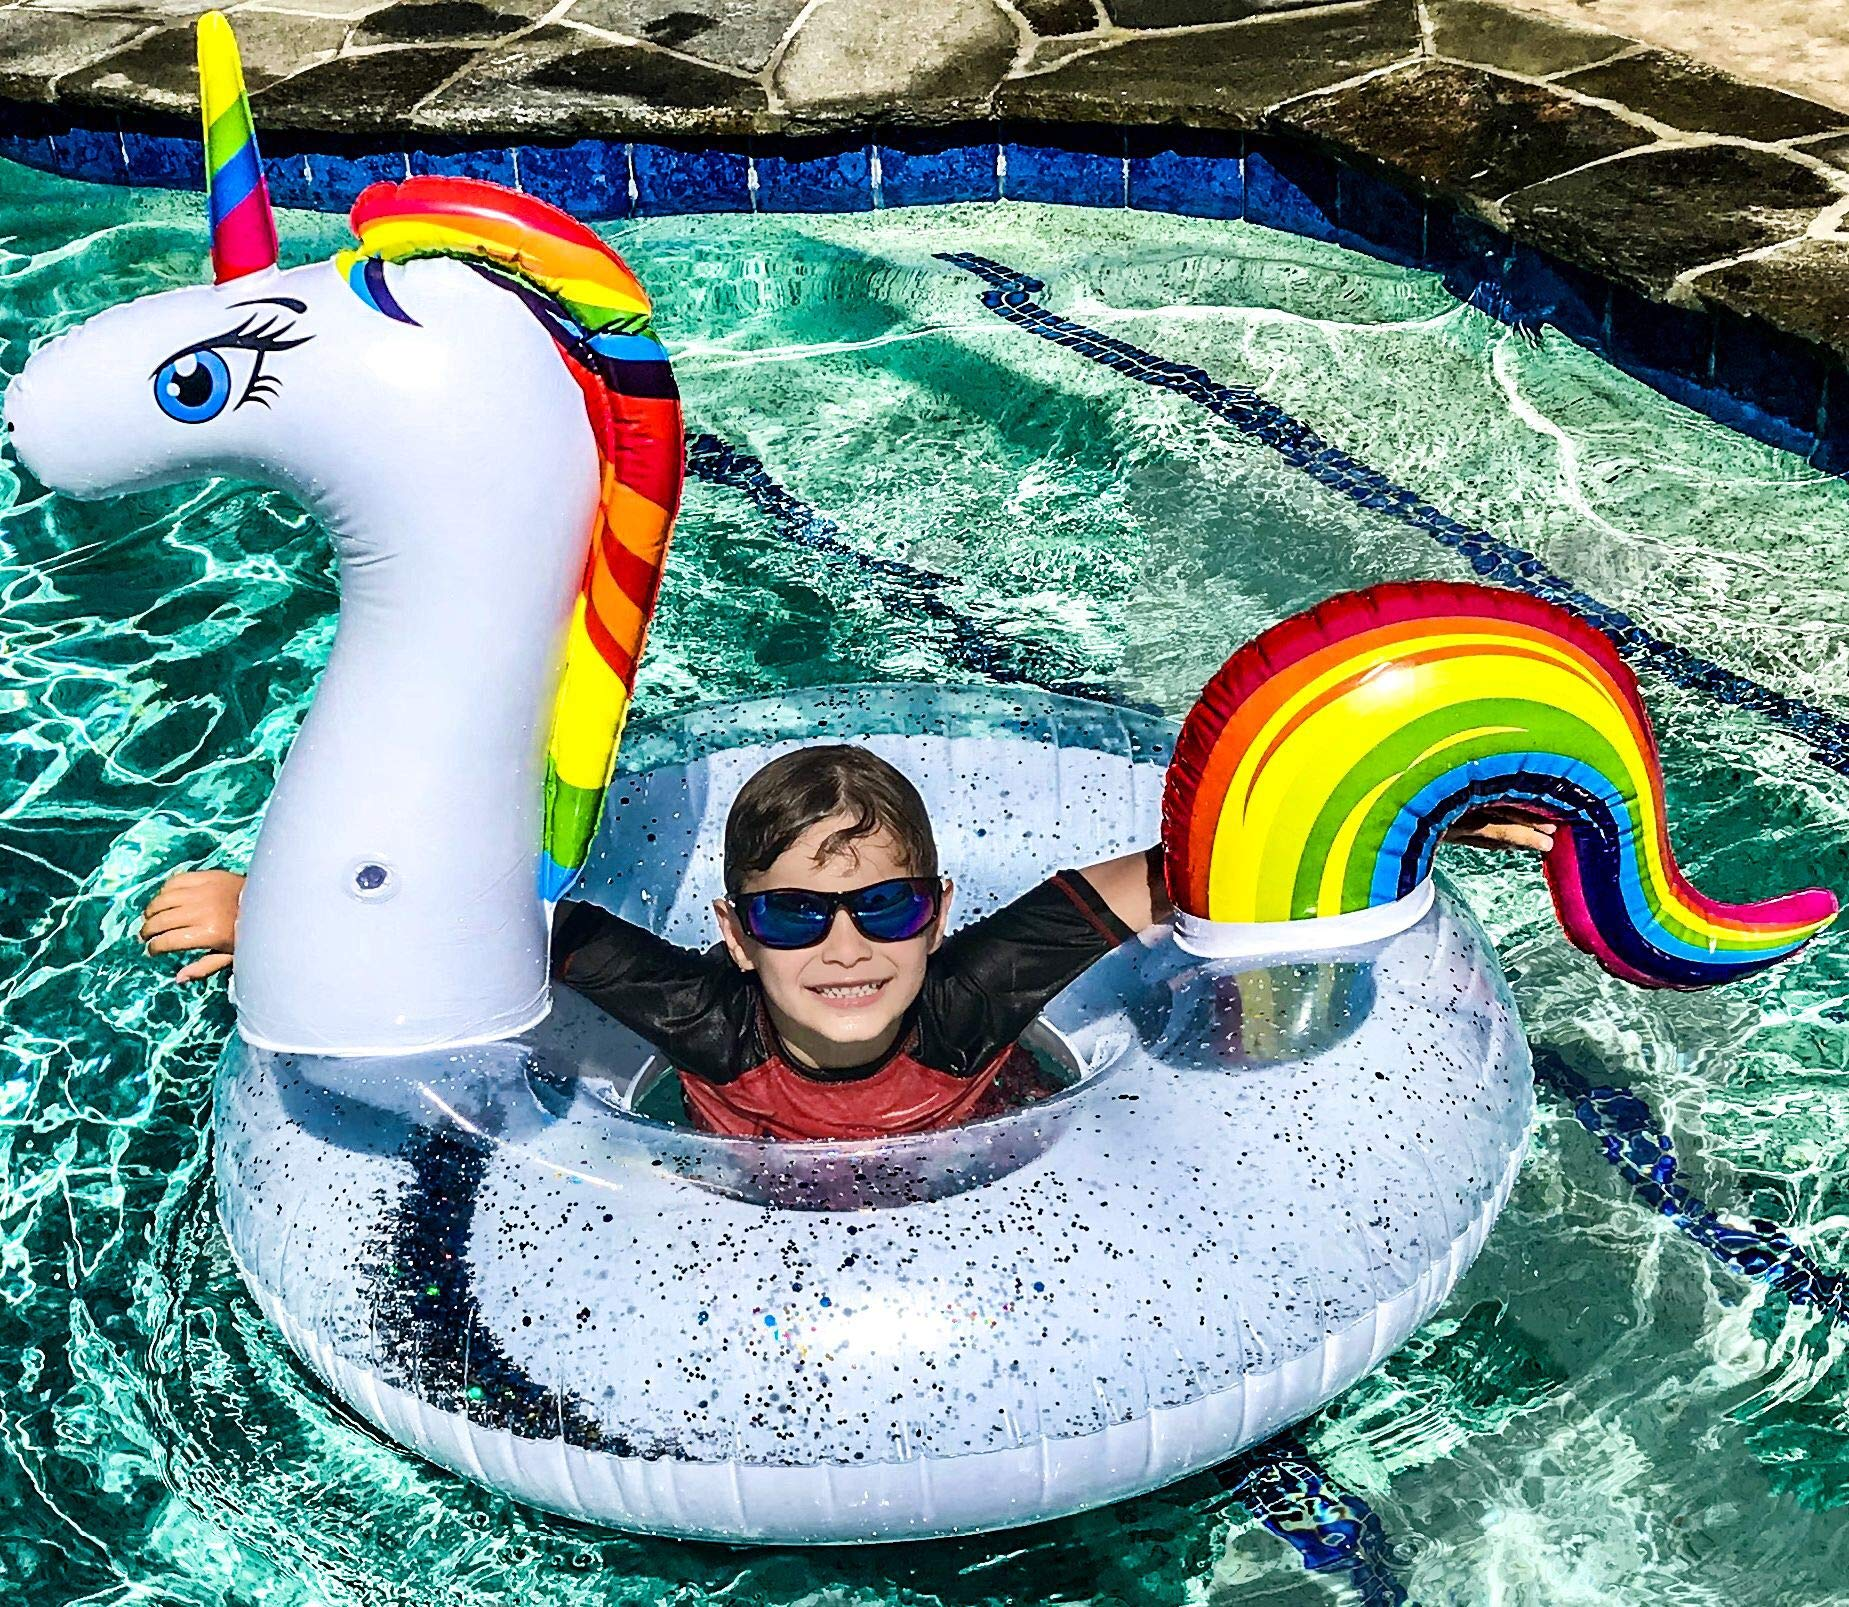 Unicorn Pool Floats for Kids - Glitter Filled - Ride ON Inflatable Unicorn Float for Pool Lake River RAFT - Giant… 4